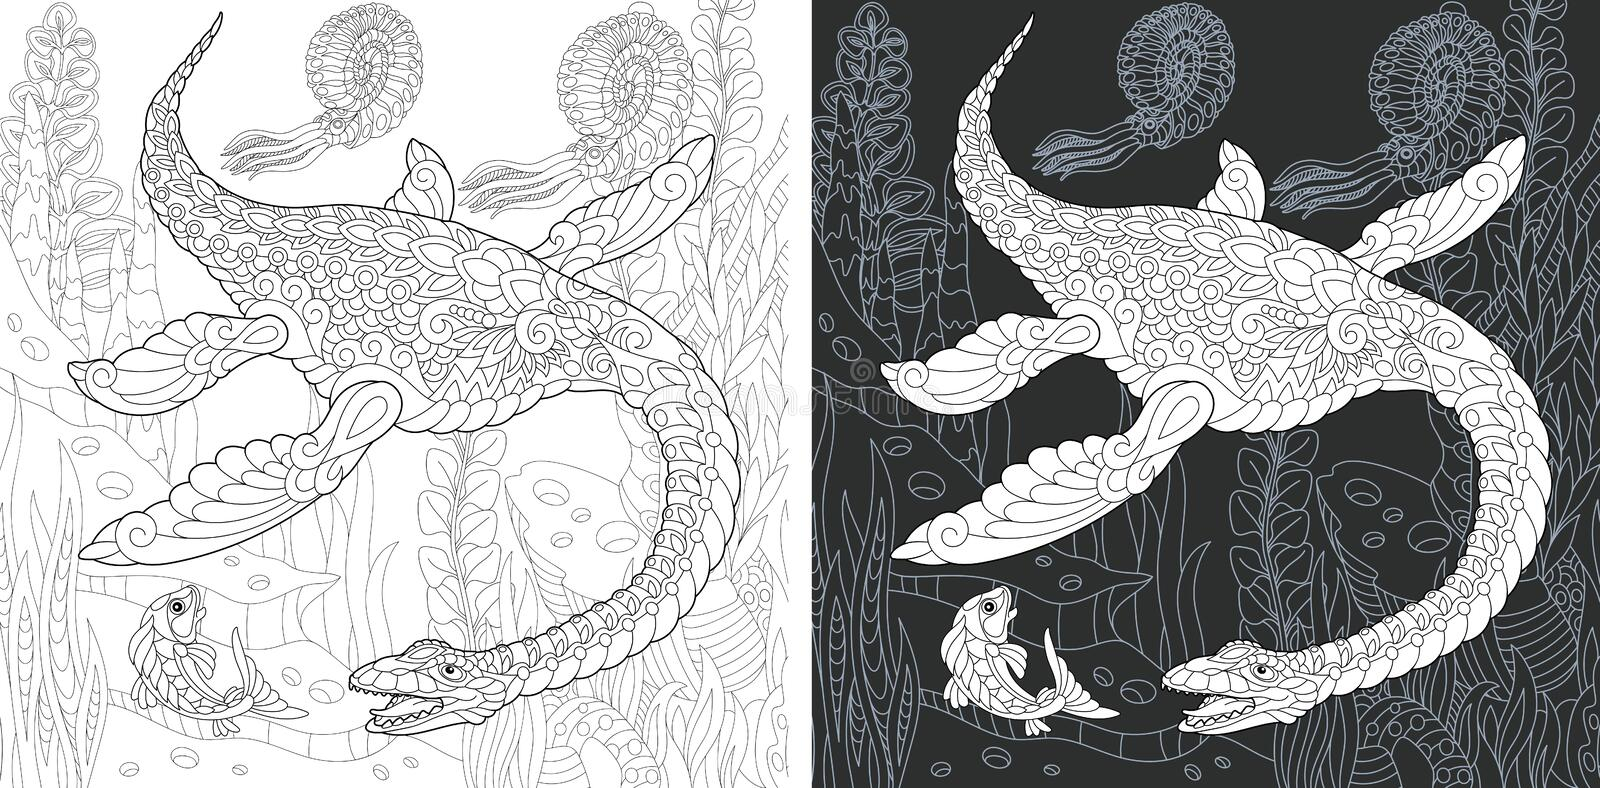 Coloring pages with Plesiosaurus royalty free stock images